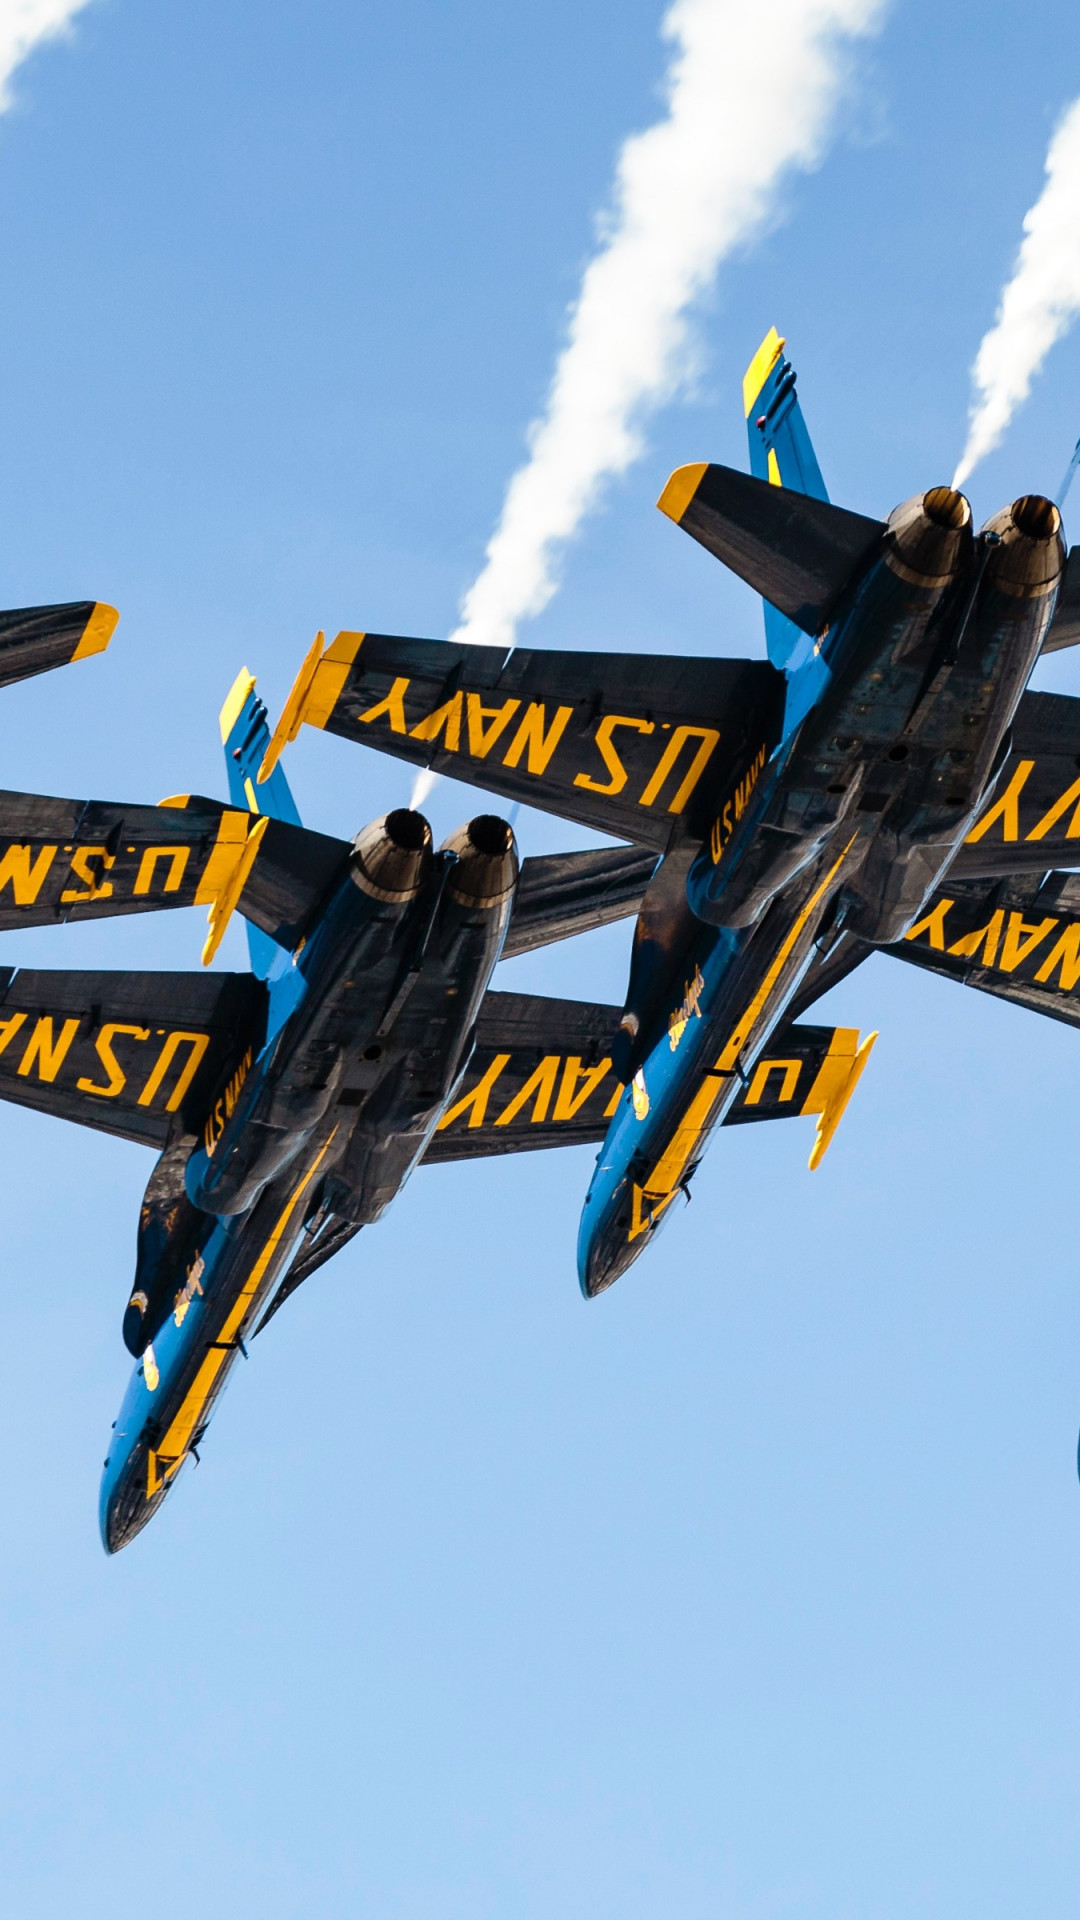 Blue Angels at San Francisco airshow wallpaper 1080x1920